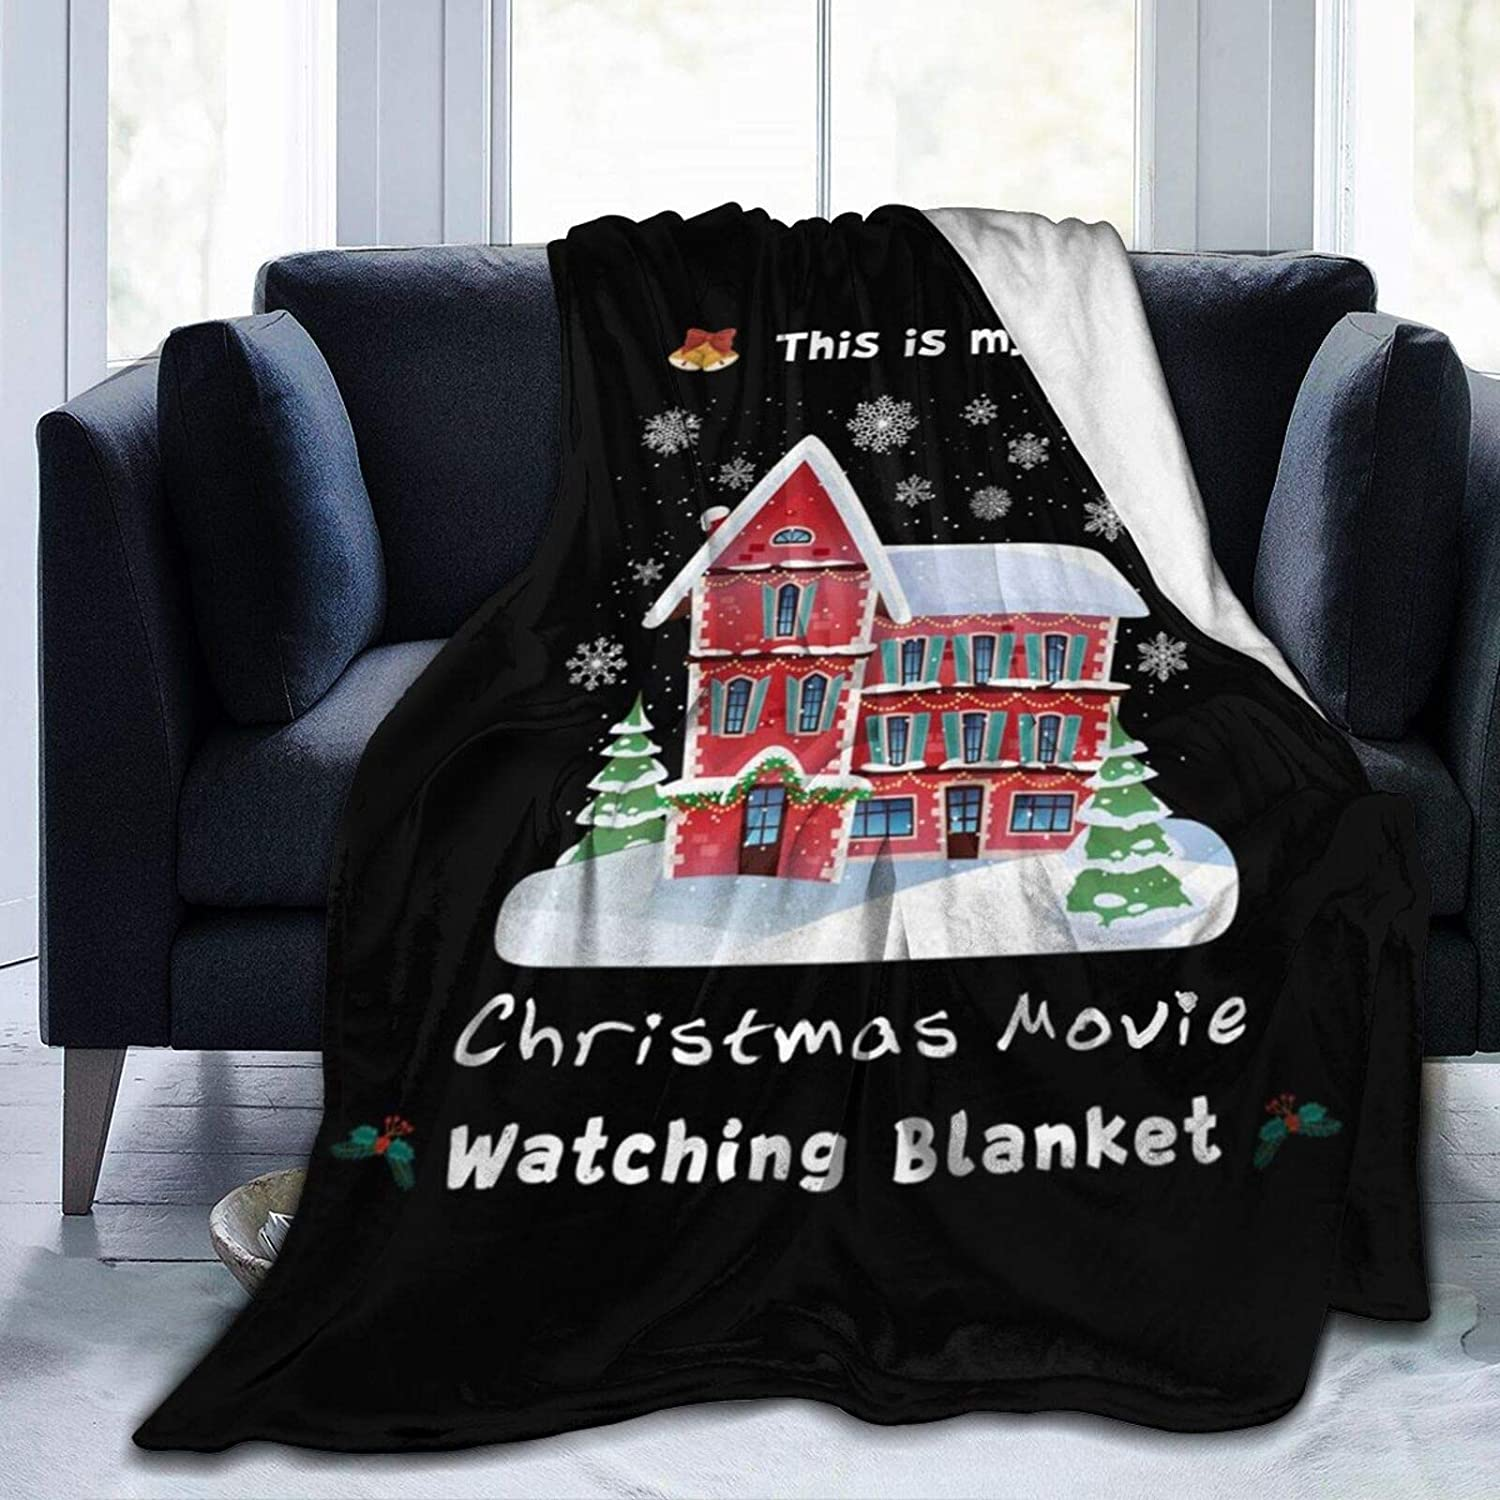 Xmas Special sale item Fleece Throw Blanket This is Watching Christmas 1 year warranty My Movie Bl